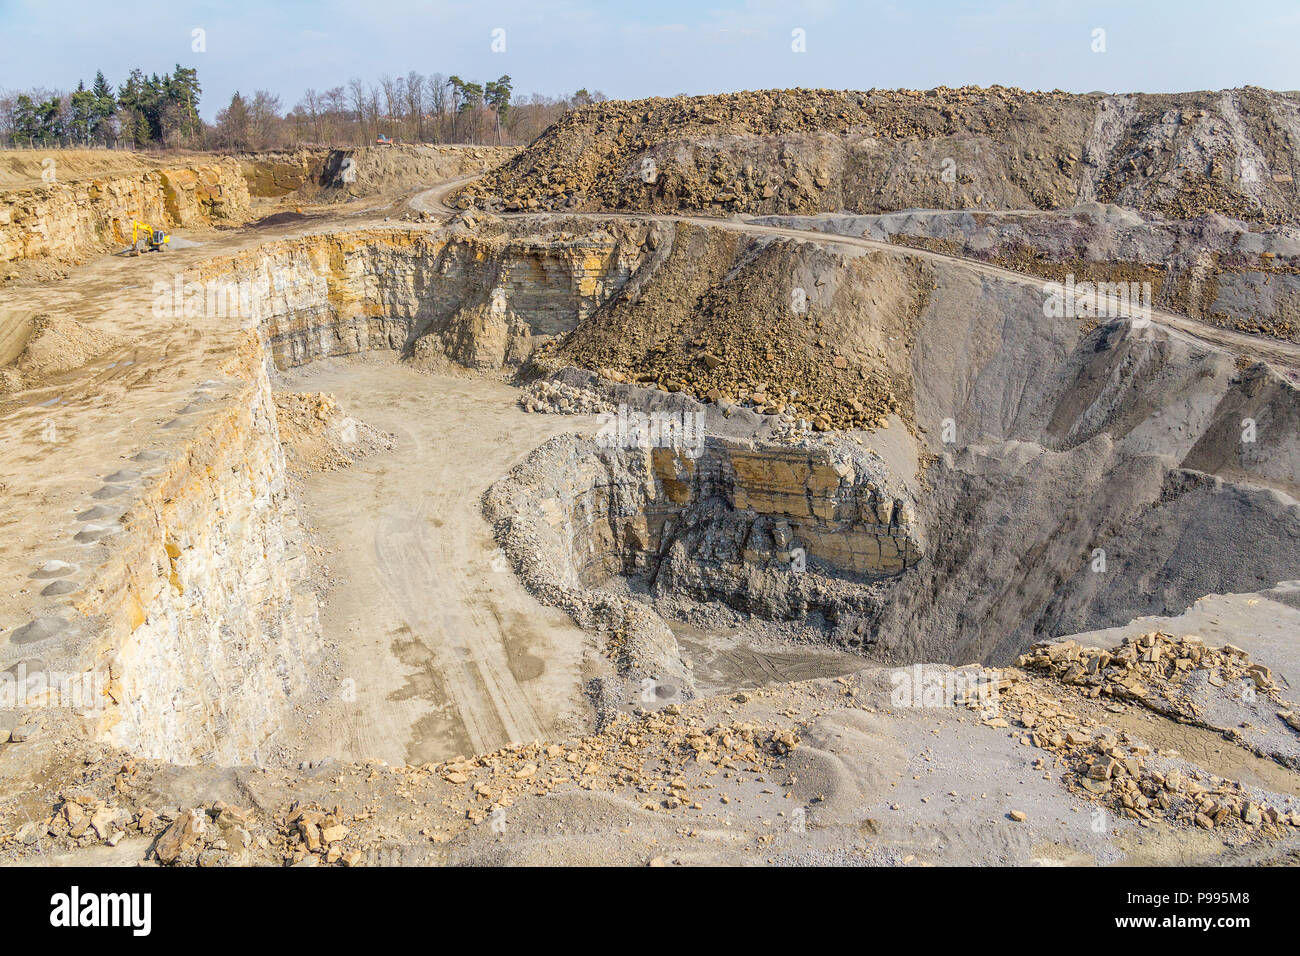 sunny illuminated stone pit scenery in Southern Germany - Stock Image